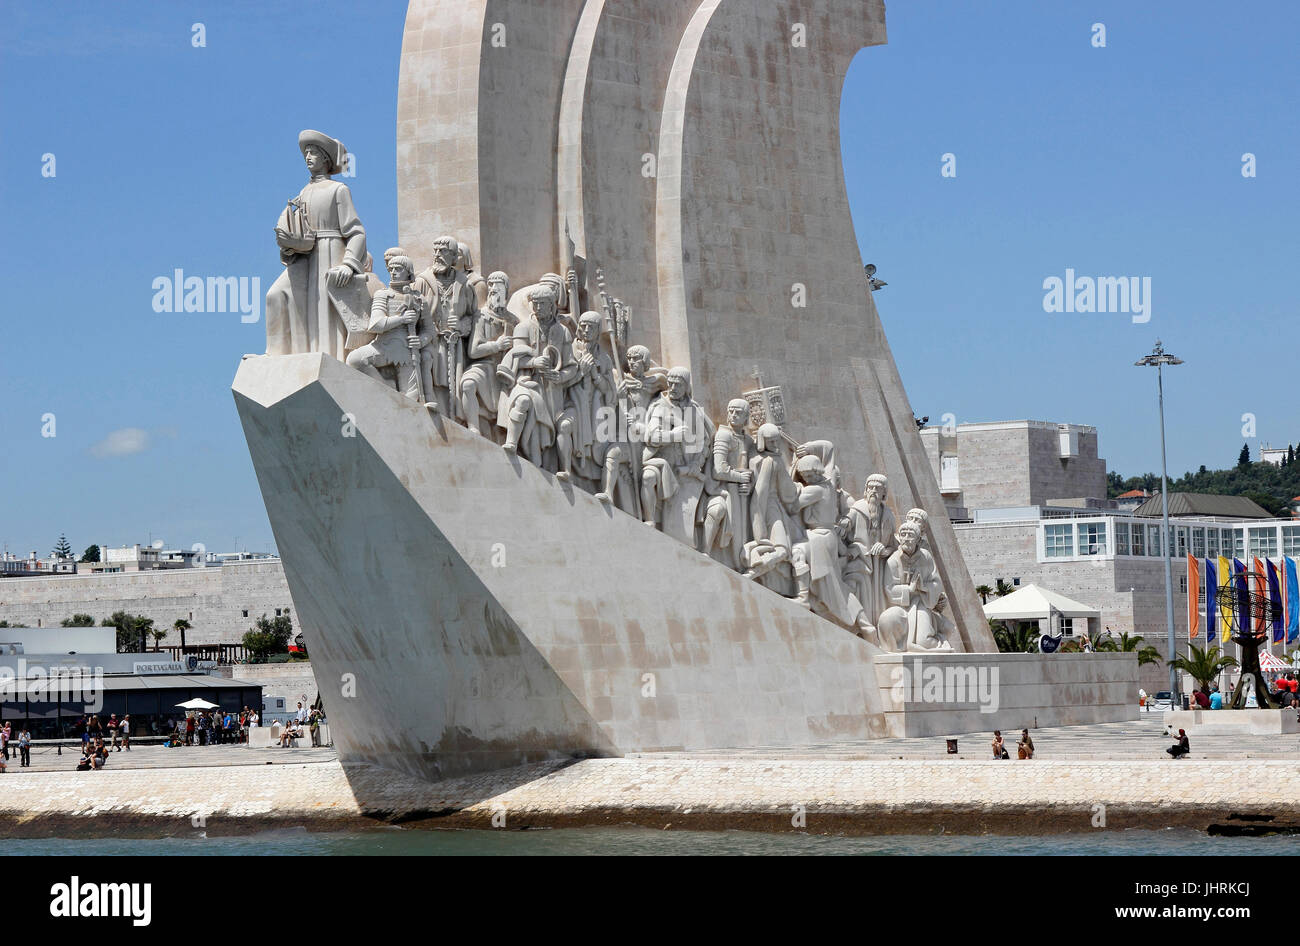 Monument to the Discoveries on the Tagus River Lisbon harbor Portugal - Stock Image